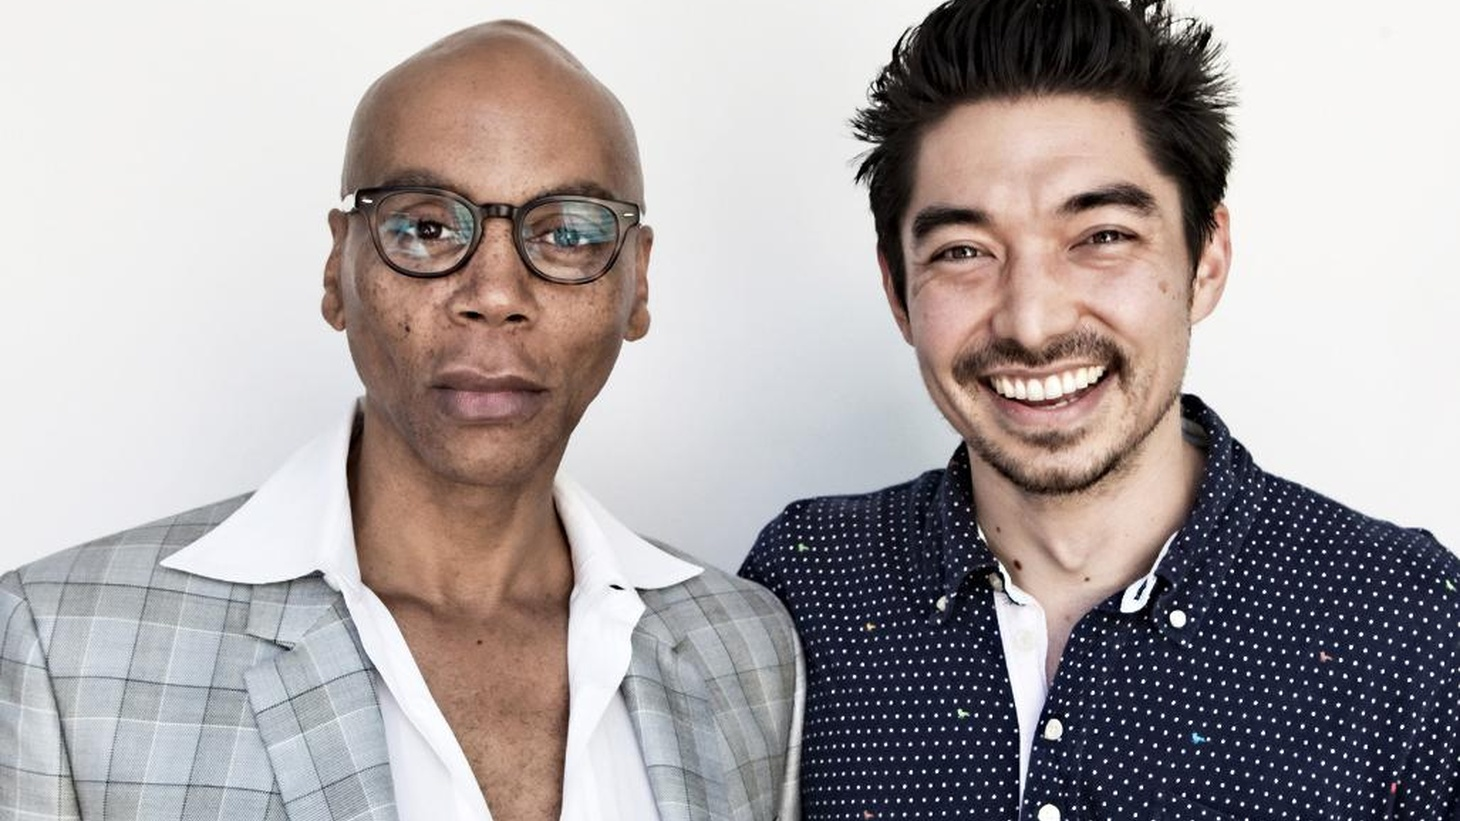 For his Guest DJ set, drag queen RuPaul shares his favorite pop song, the songwriters that make him cry and the dance track that blew his mind when he first heard it.